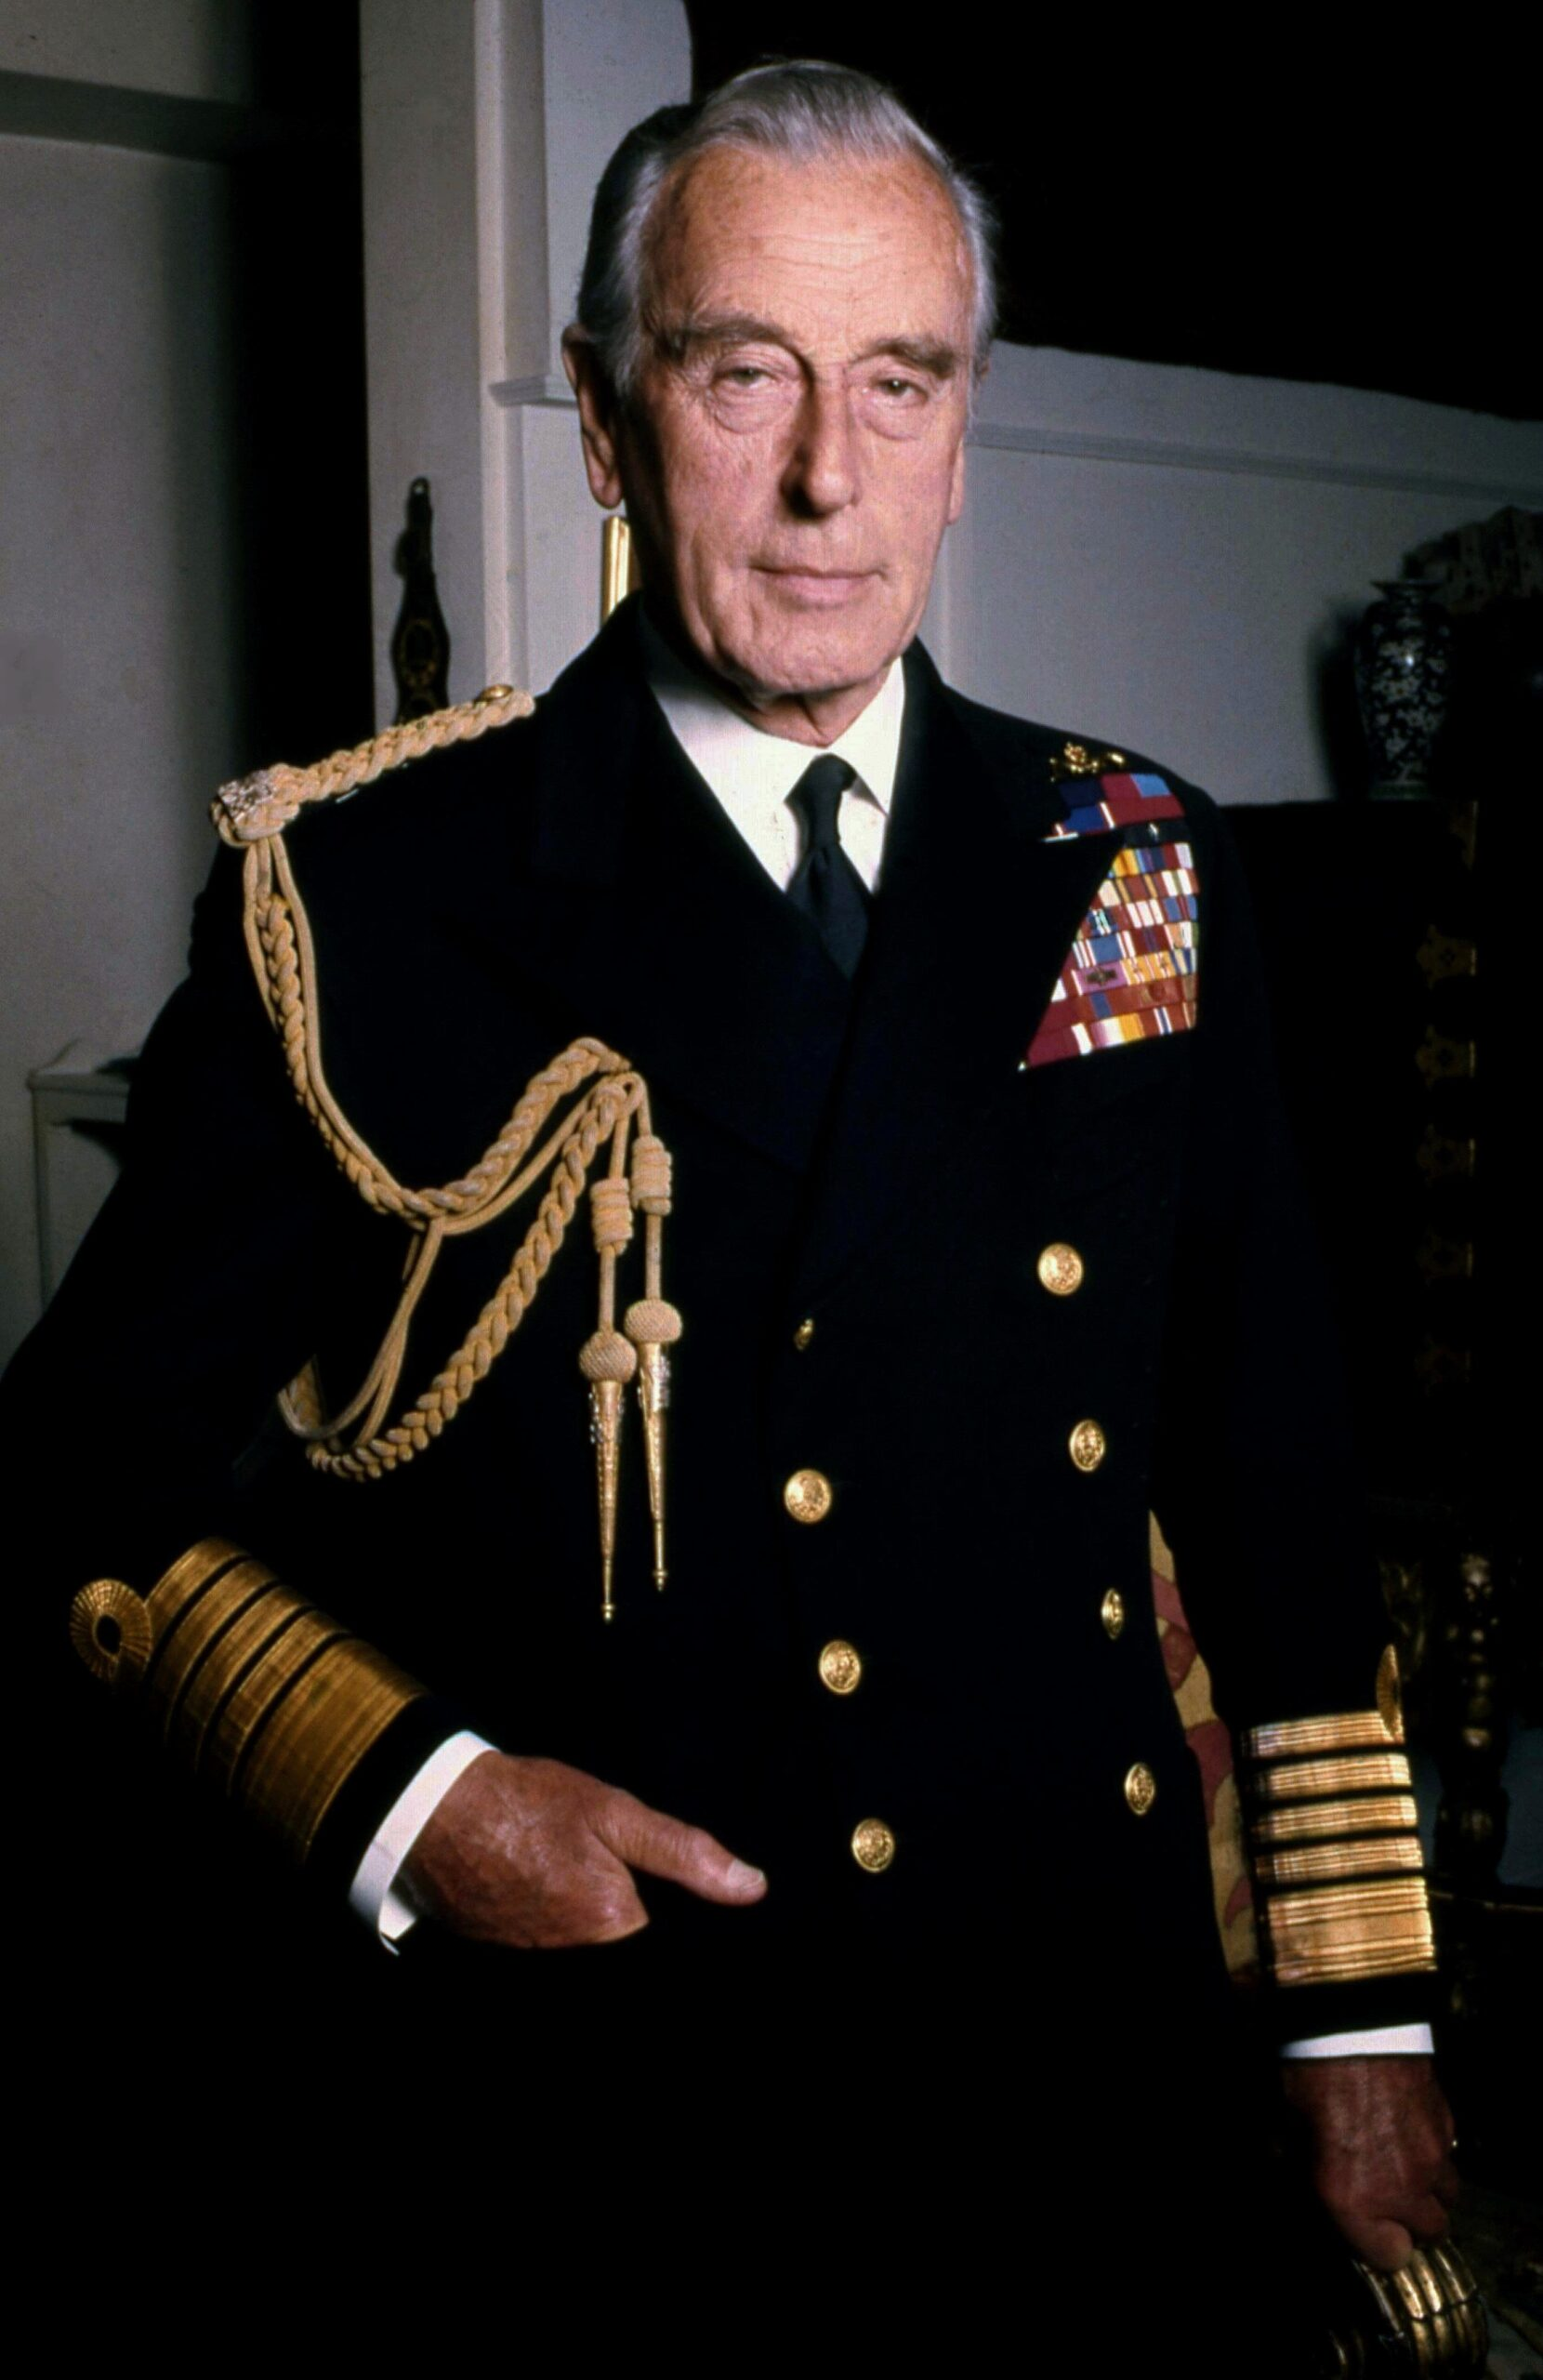 Ladt governor-general or viceroy of India Lord Mountbatten